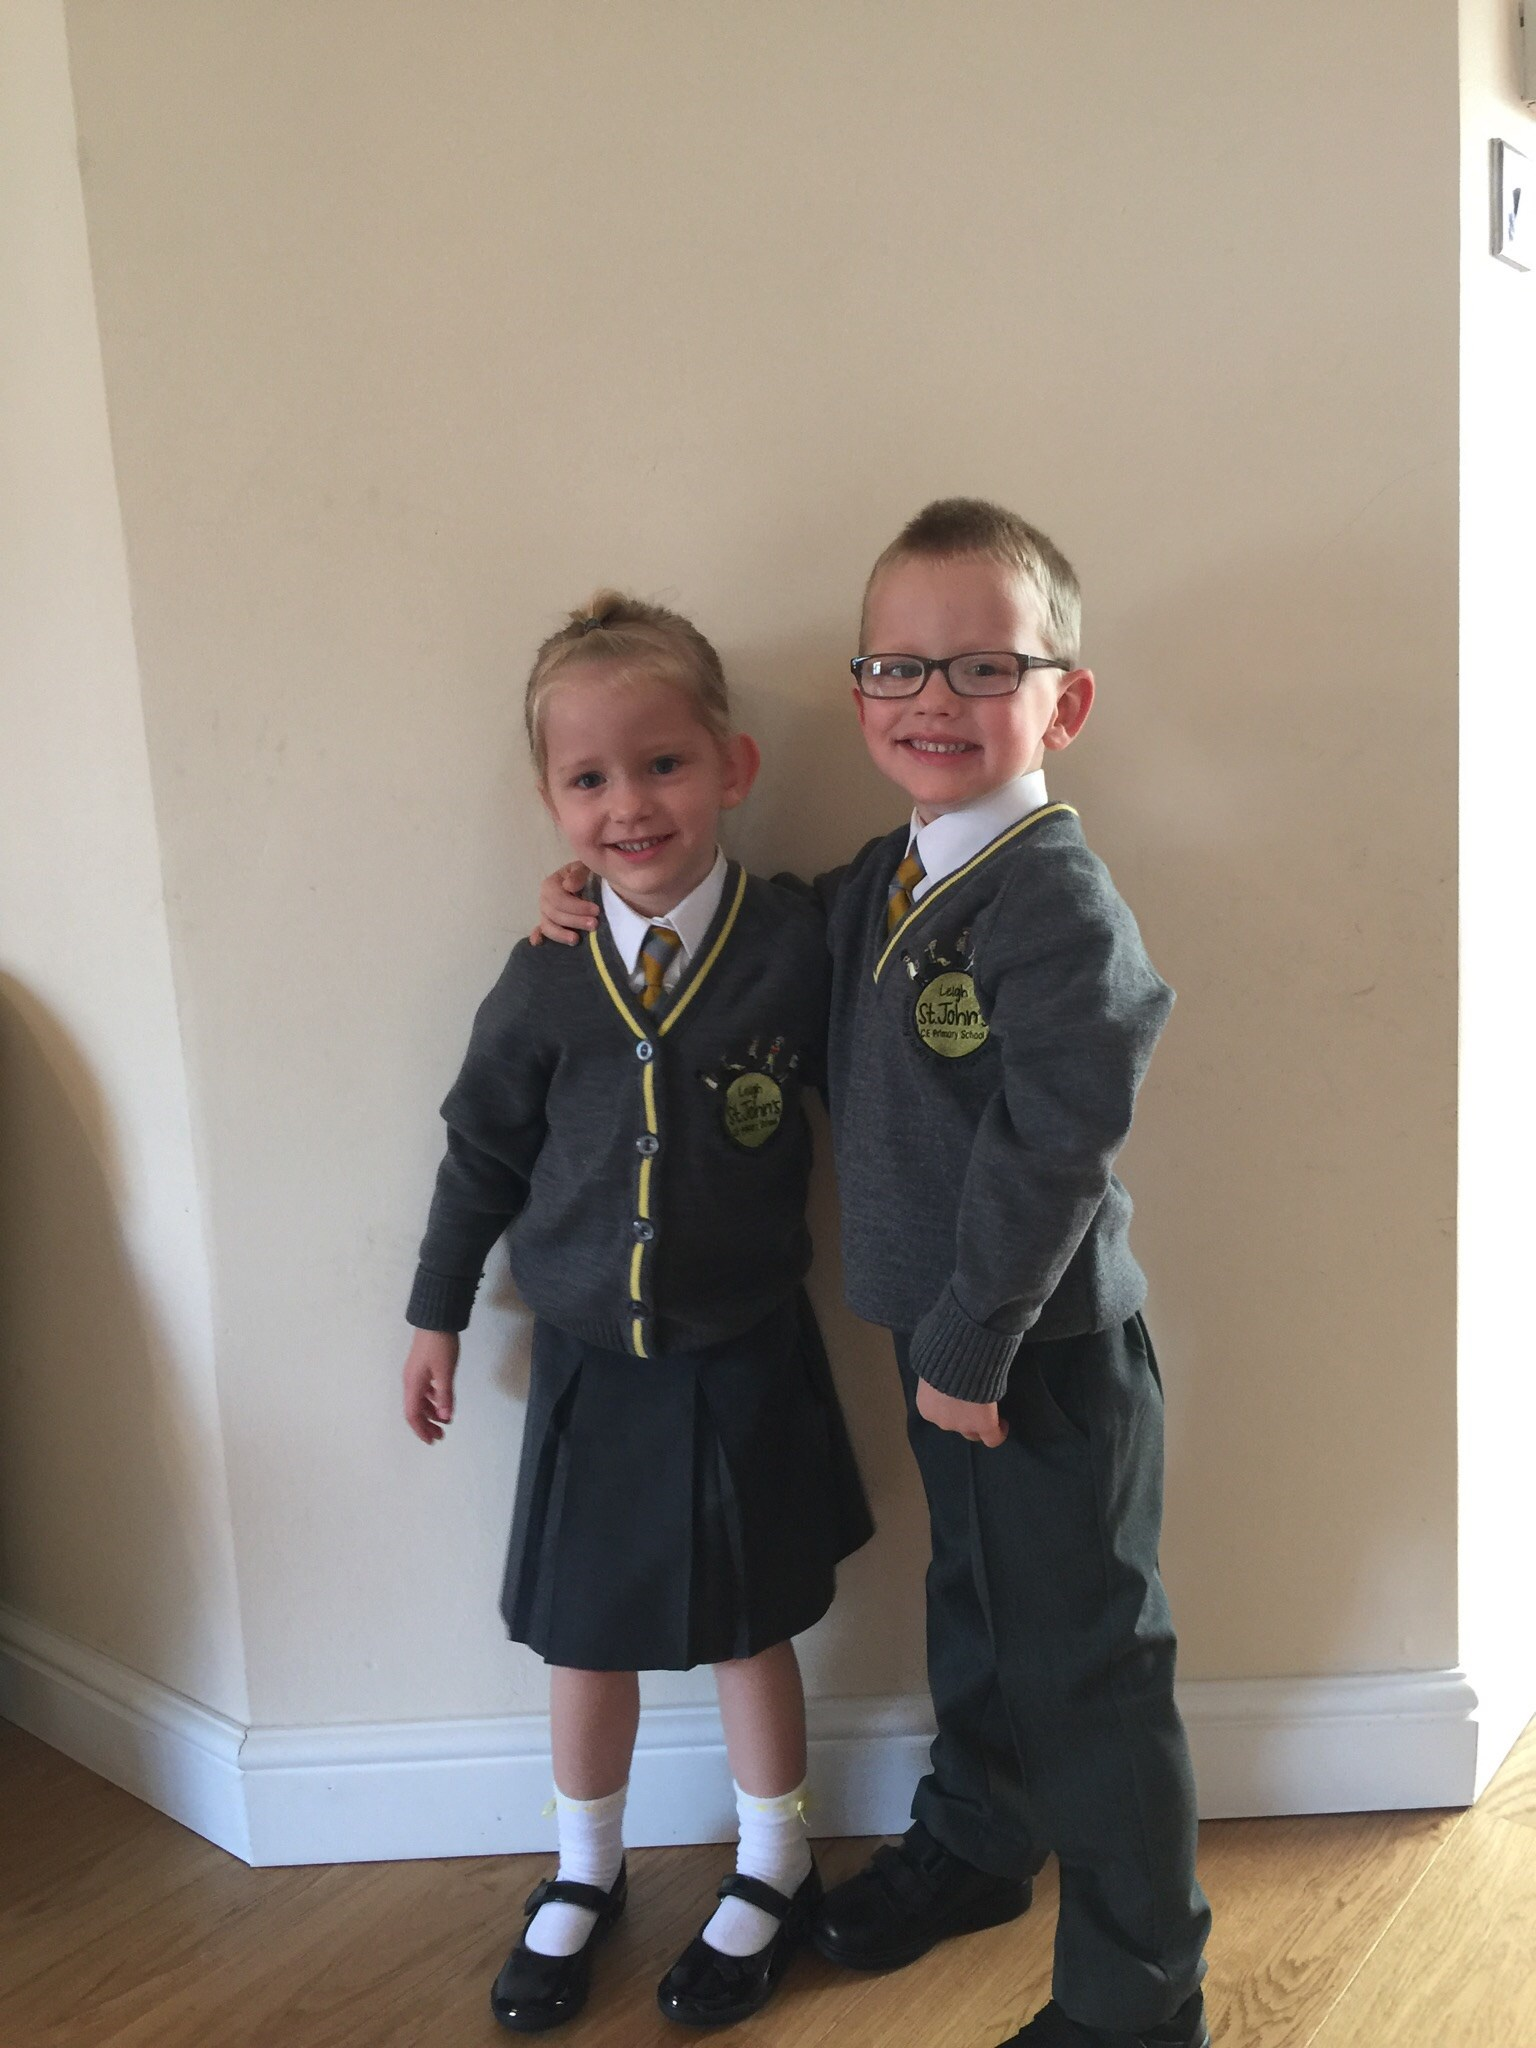 Great-grand twins off to school